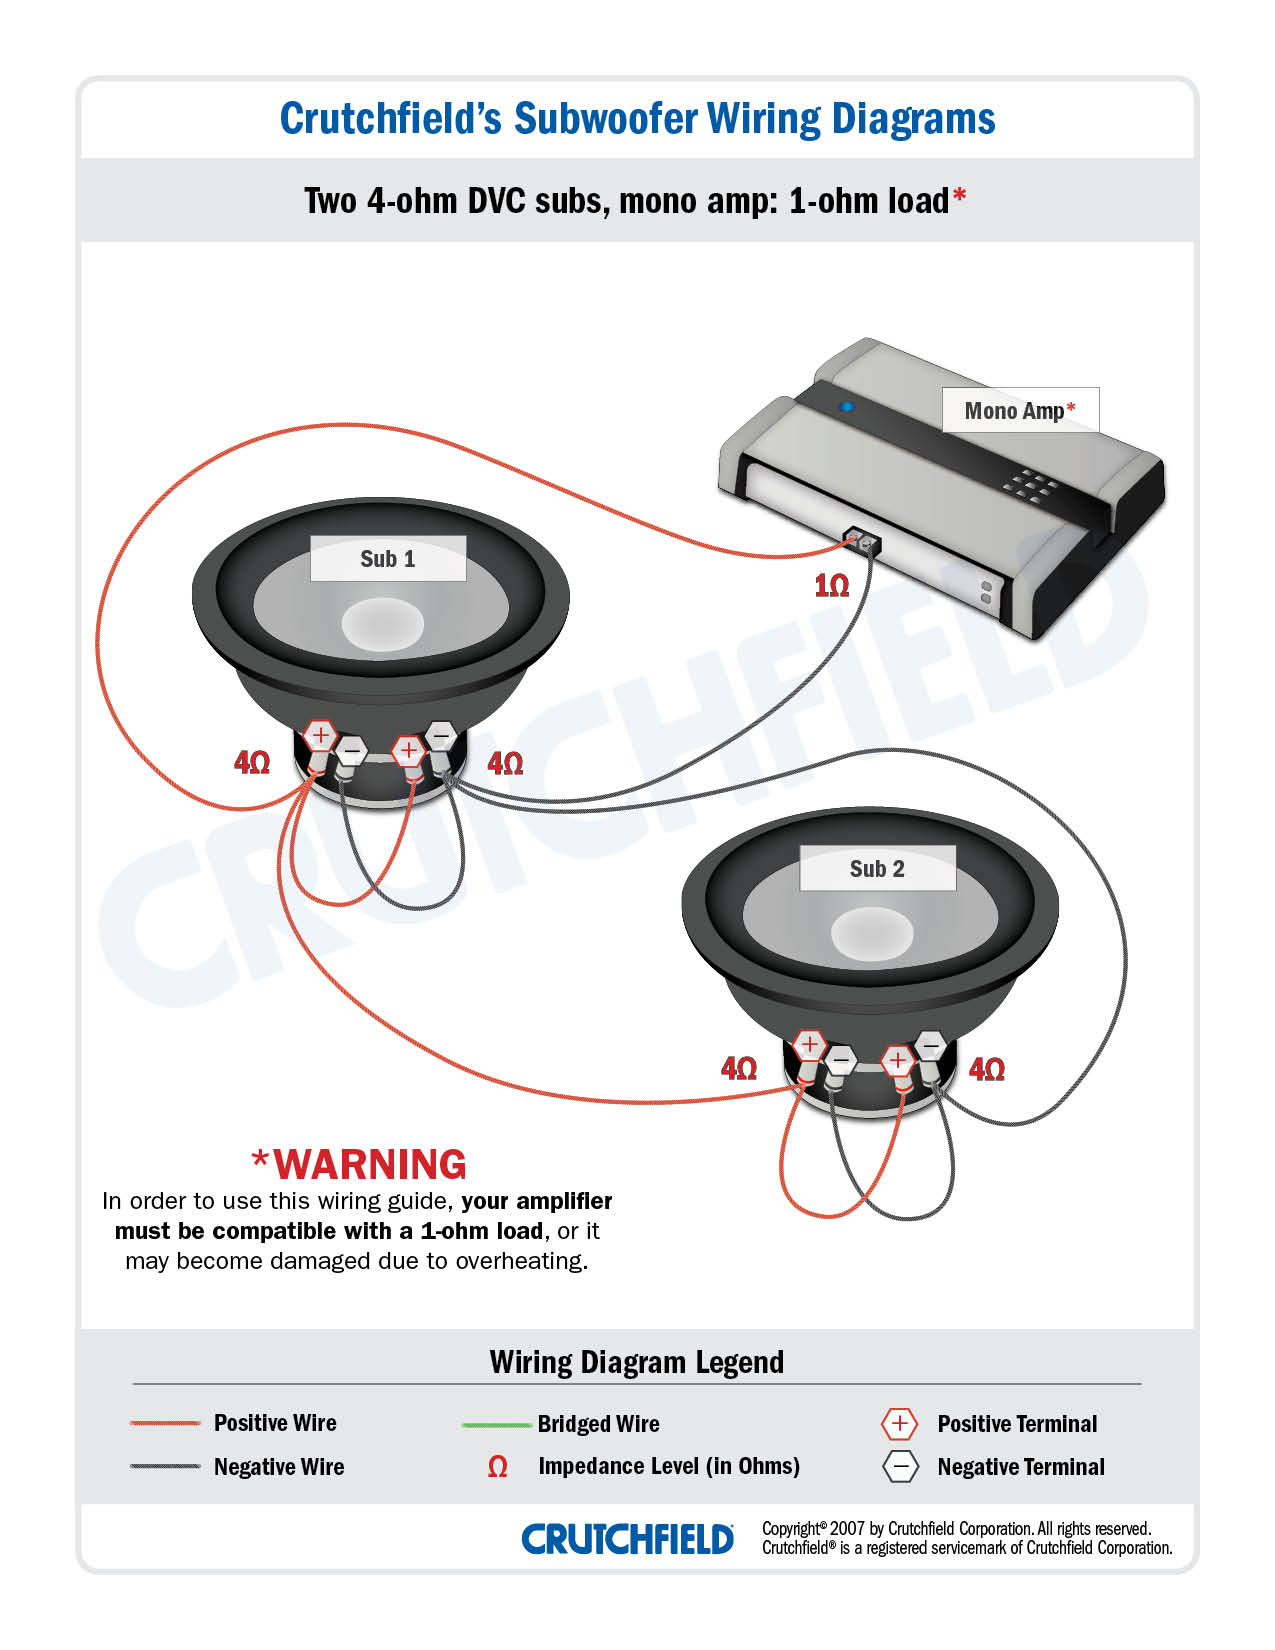 2 DVC 4 ohm mono low imp subwoofer amp wiring diagram pioneer subwoofer wiring diagram kac-m1824bt wiring diagram at cita.asia